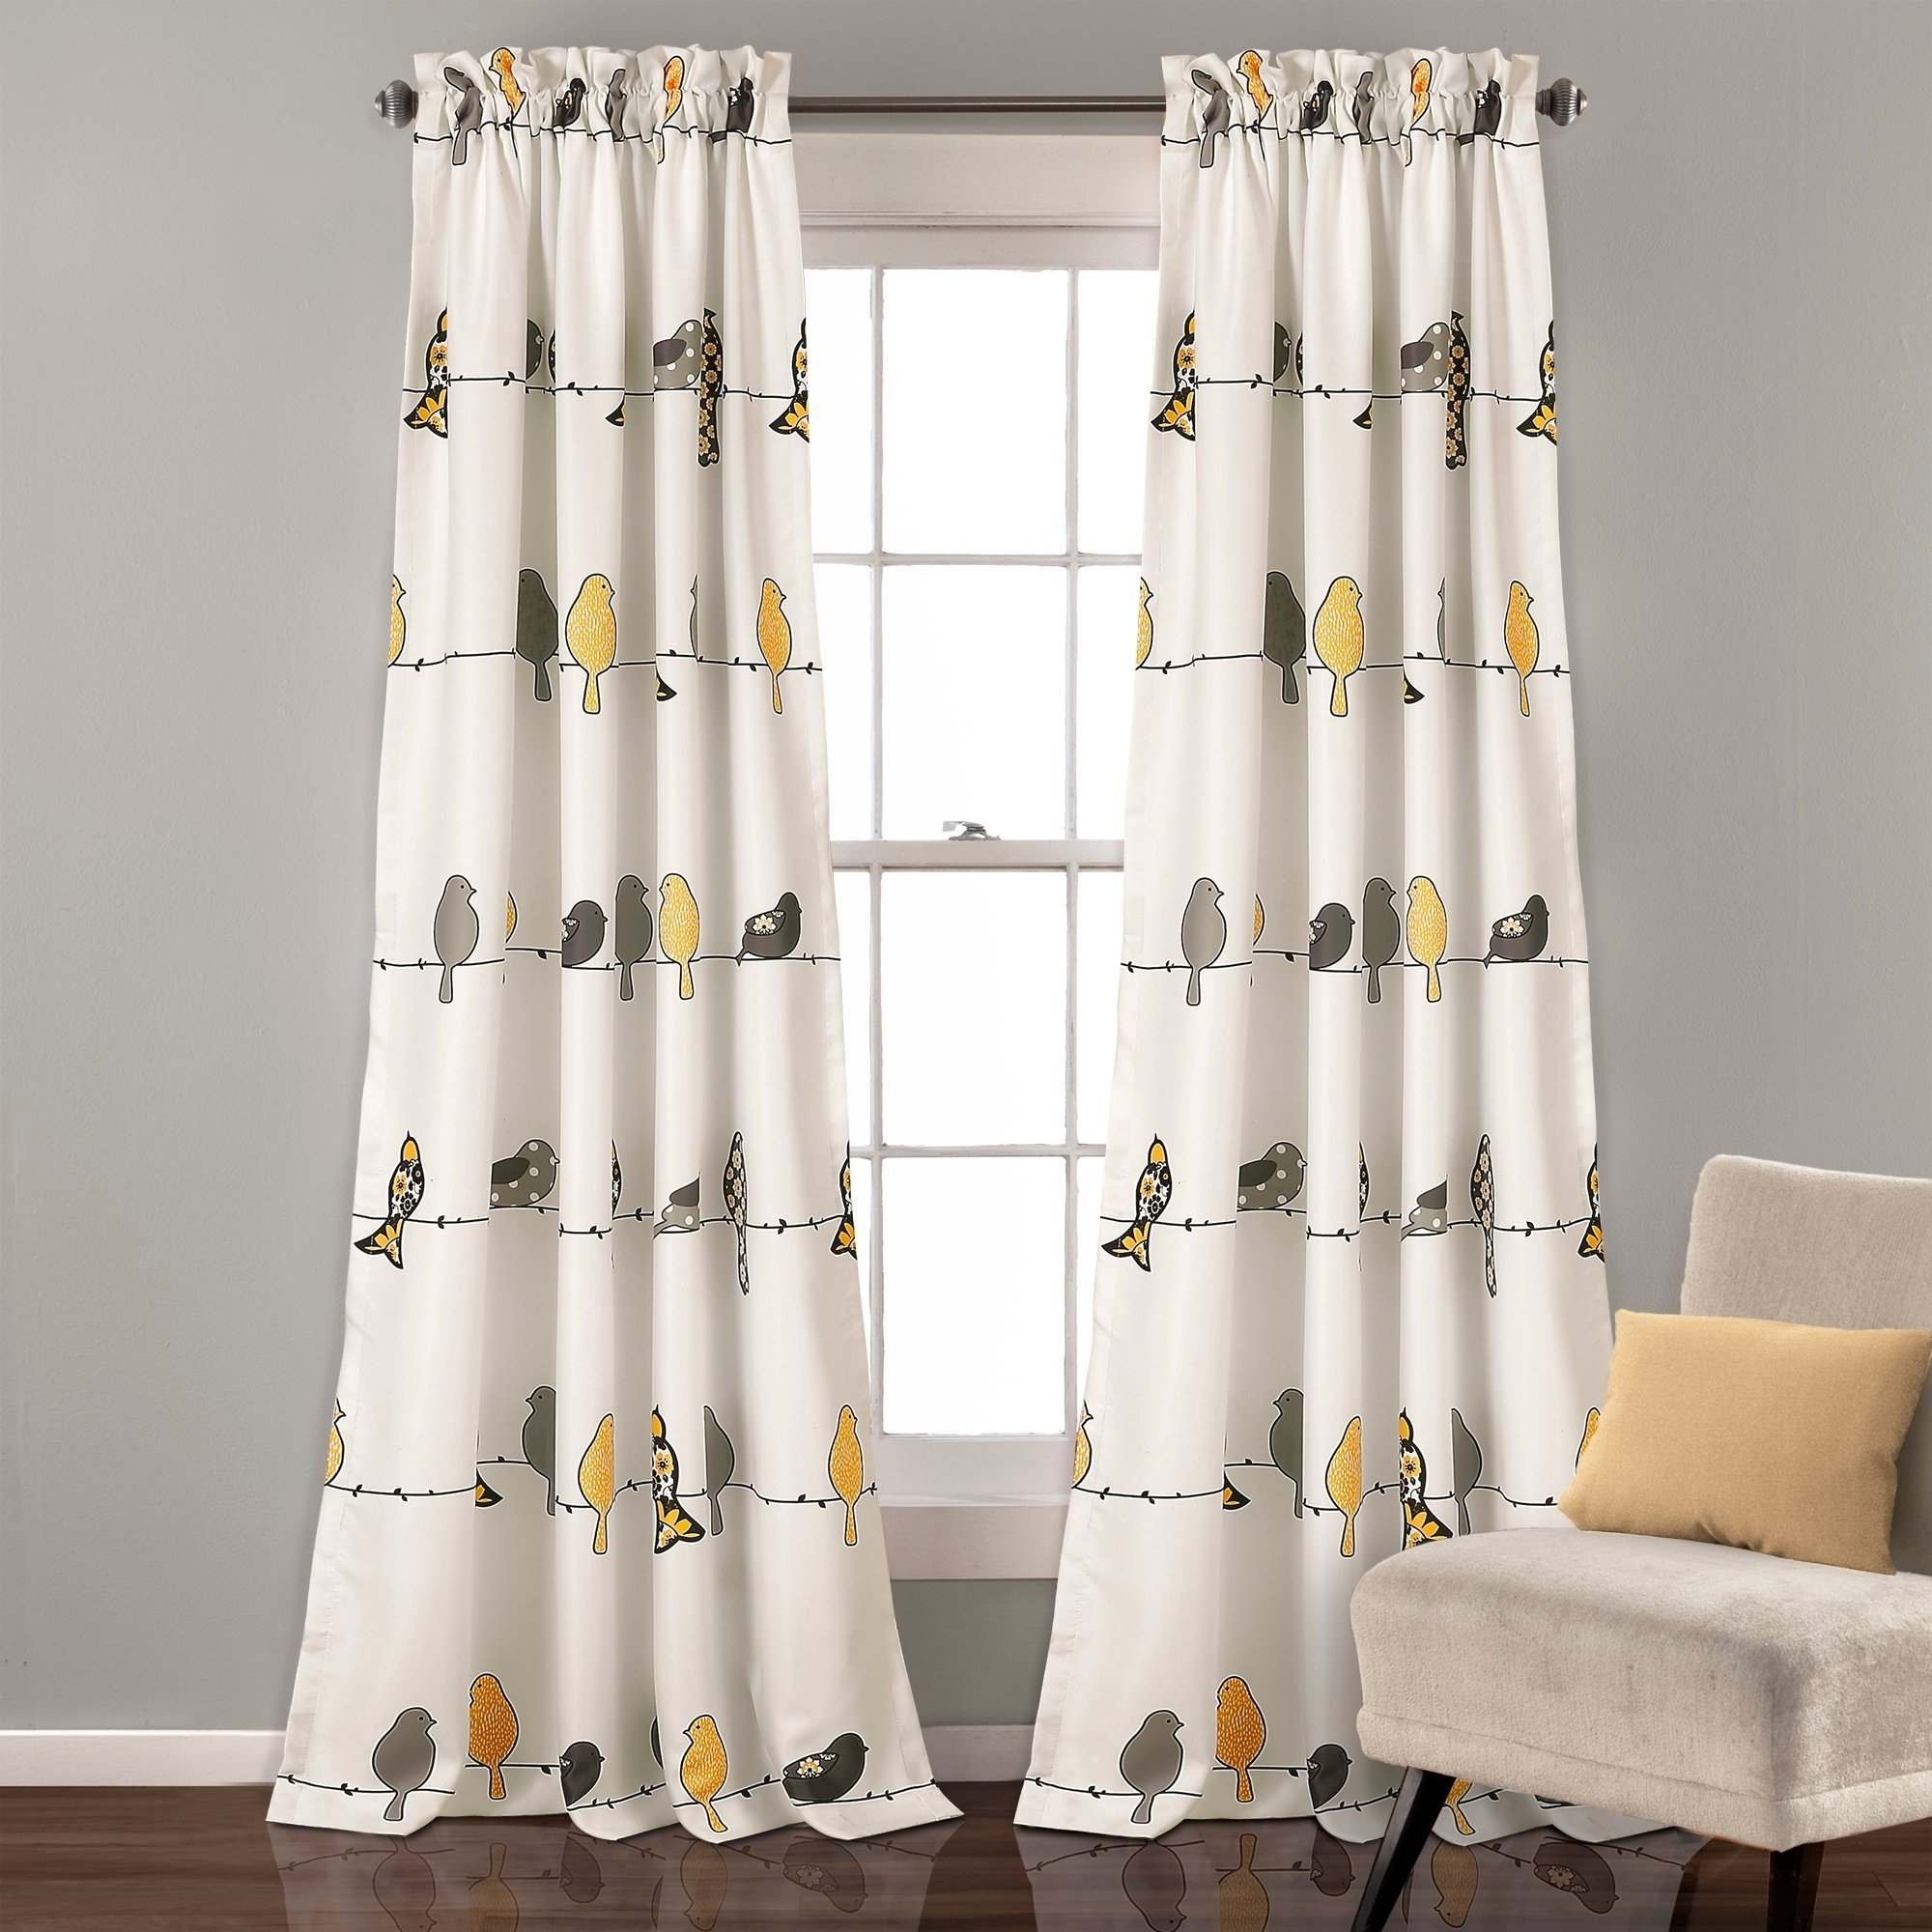 Lush Decor Rowley Birds Light Filtering Curtain Panel Pair Throughout Well Known Rowley Birds Room Darkening Curtain Panel Pairs (View 4 of 20)